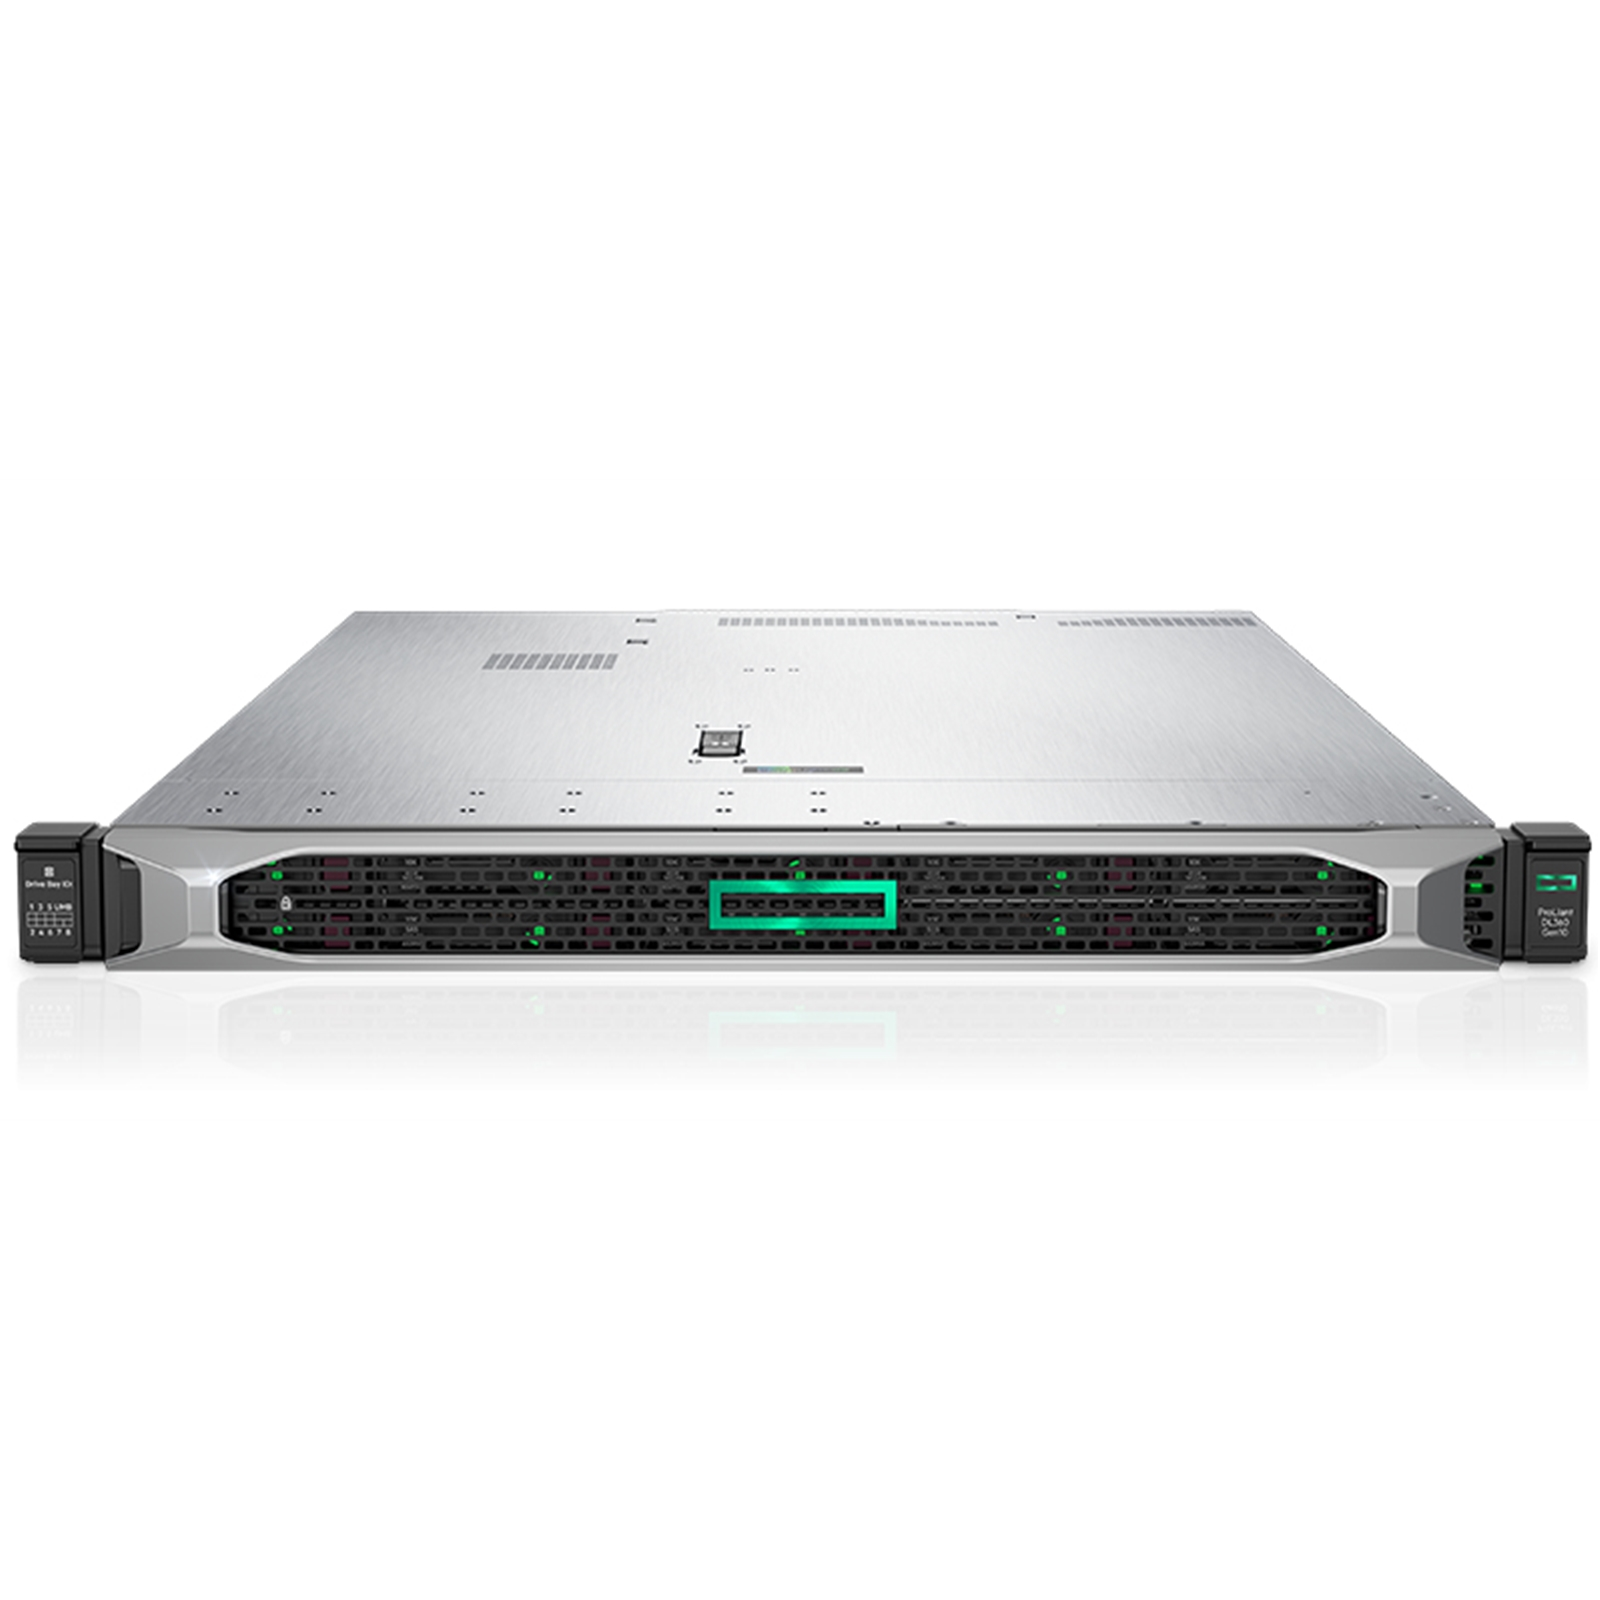 HPE 867962-B21 ENTERPRISE PROLIANT DL360 GEN10 RACK SERVER -